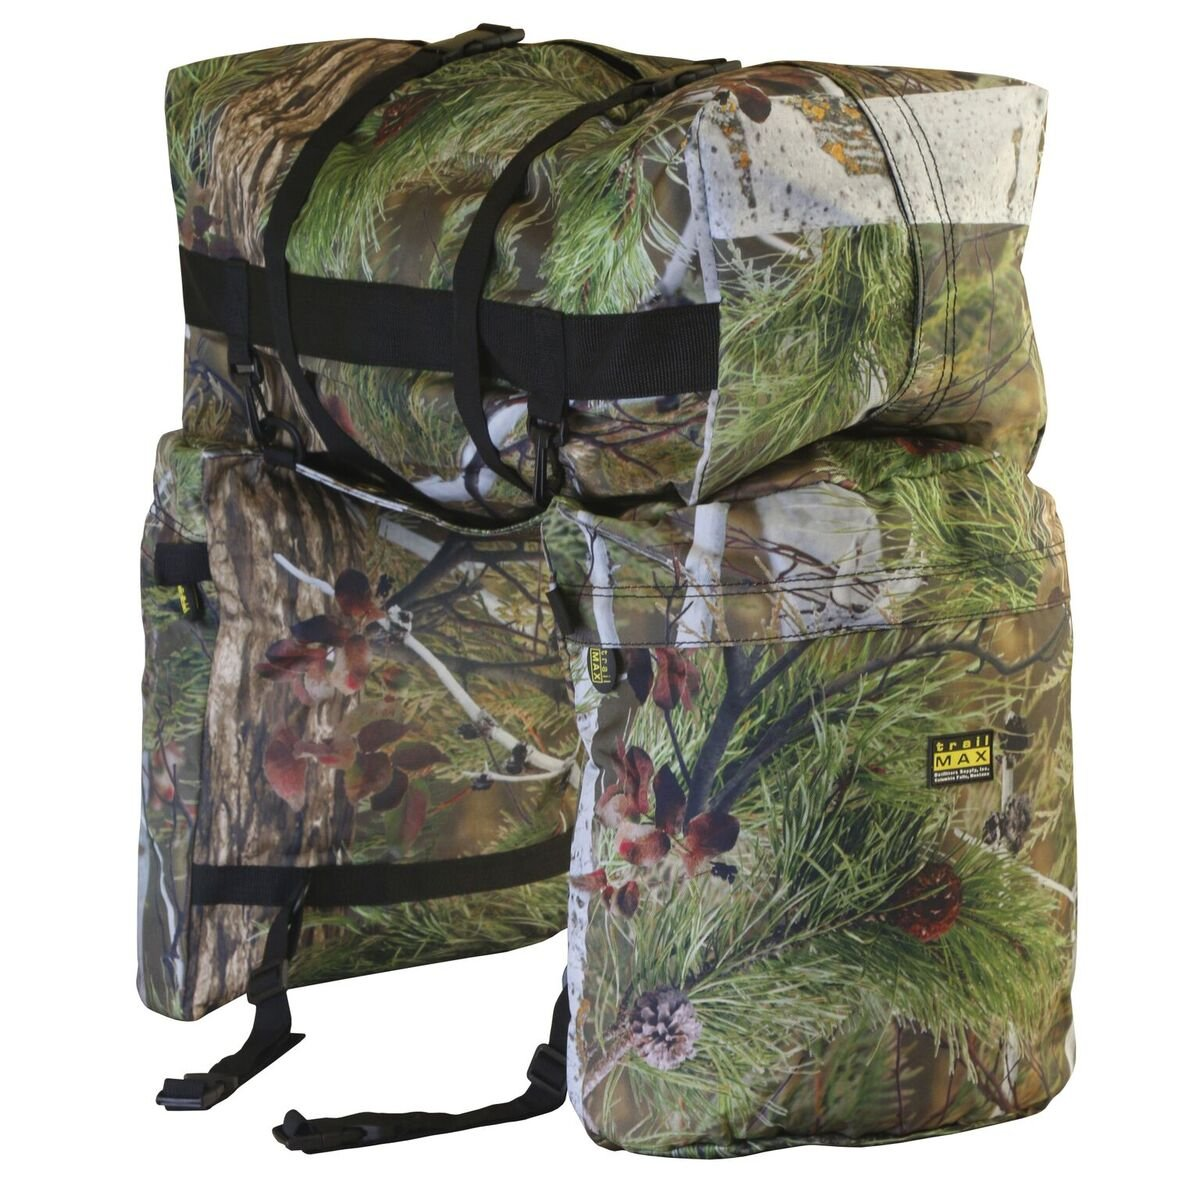 TrailMax Original Saddlebags Saddlebag Western Saddle Bag – Camo